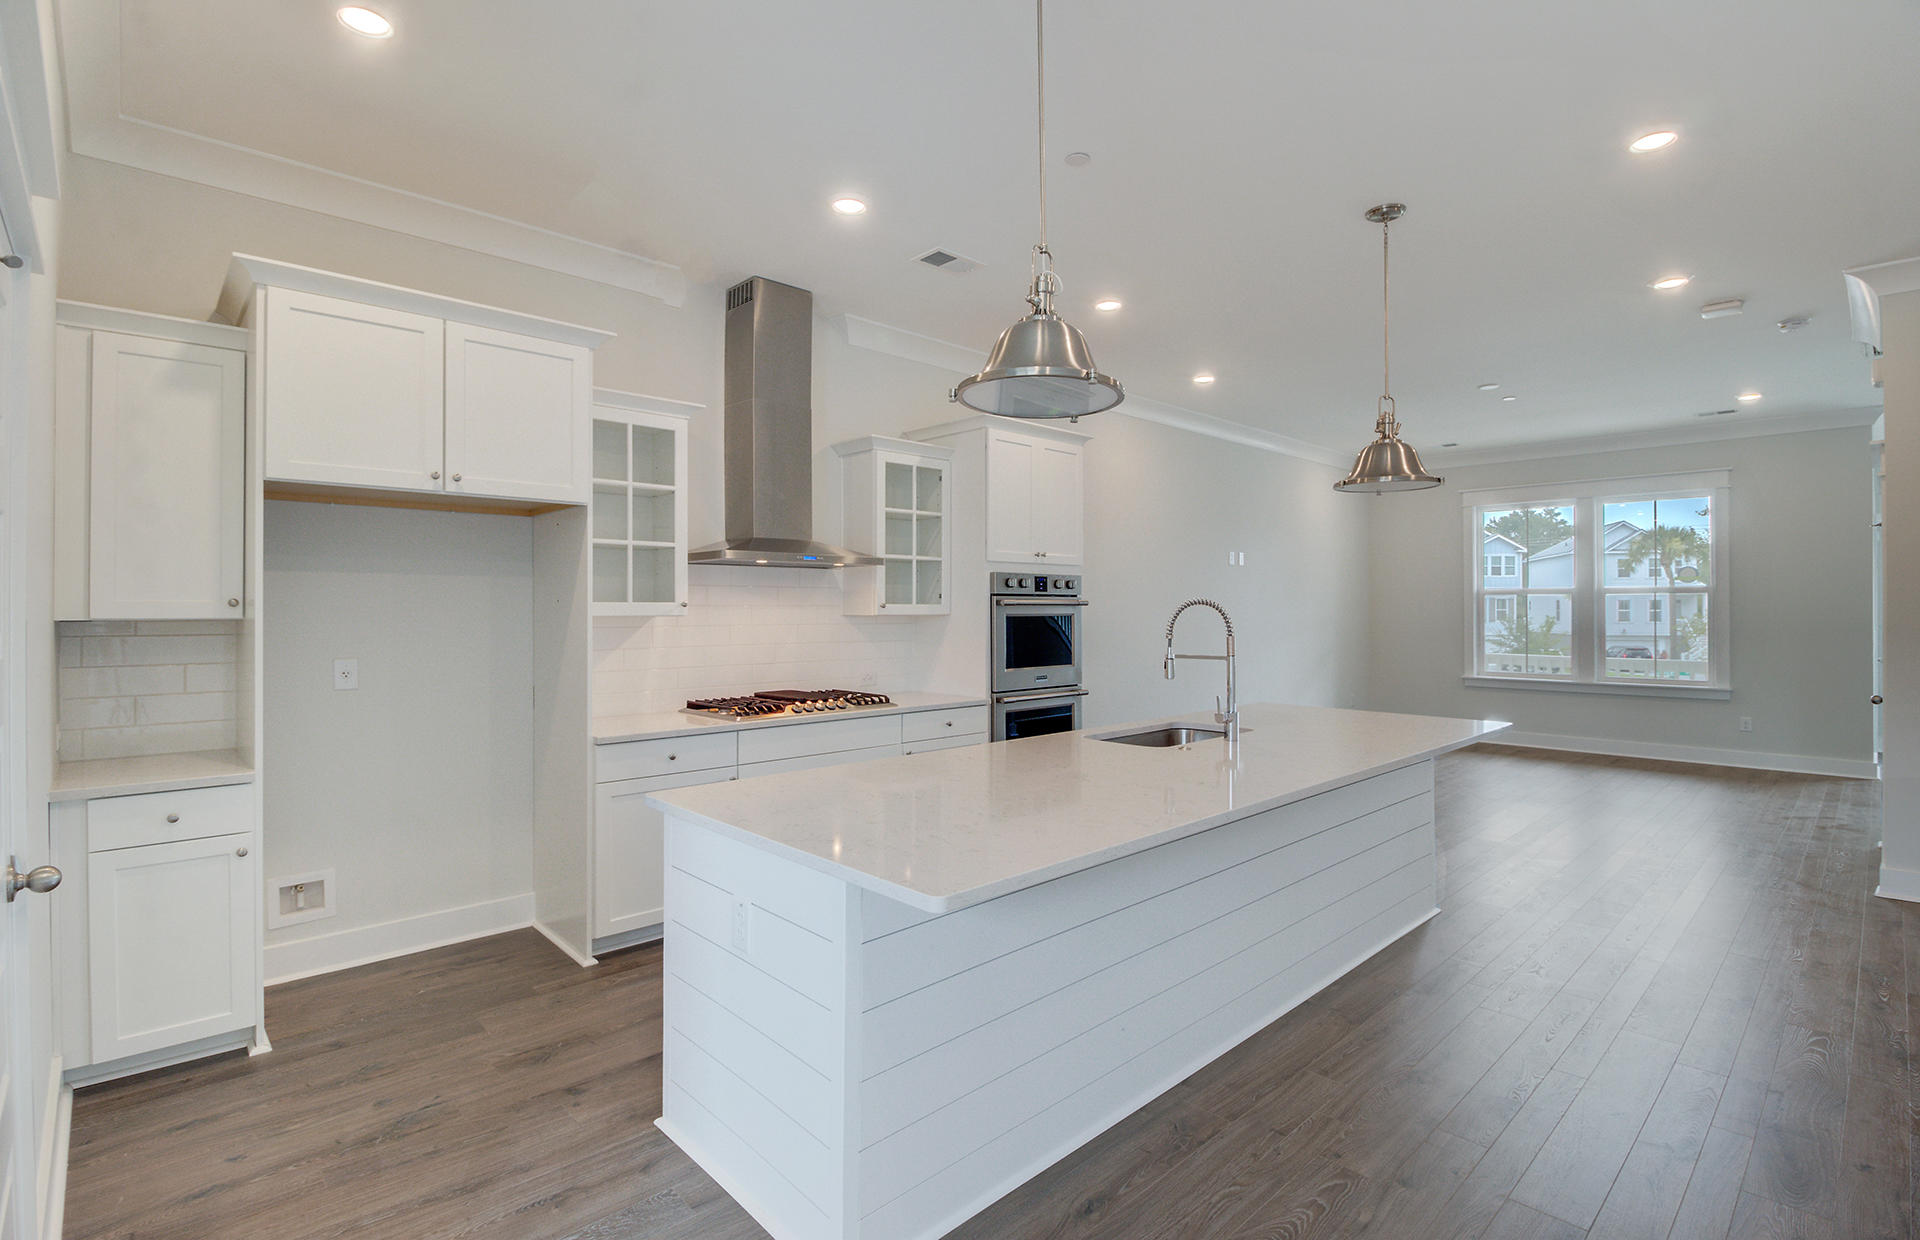 Governors Cay Homes For Sale - 814 Kings Oak, Charleston, SC - 33